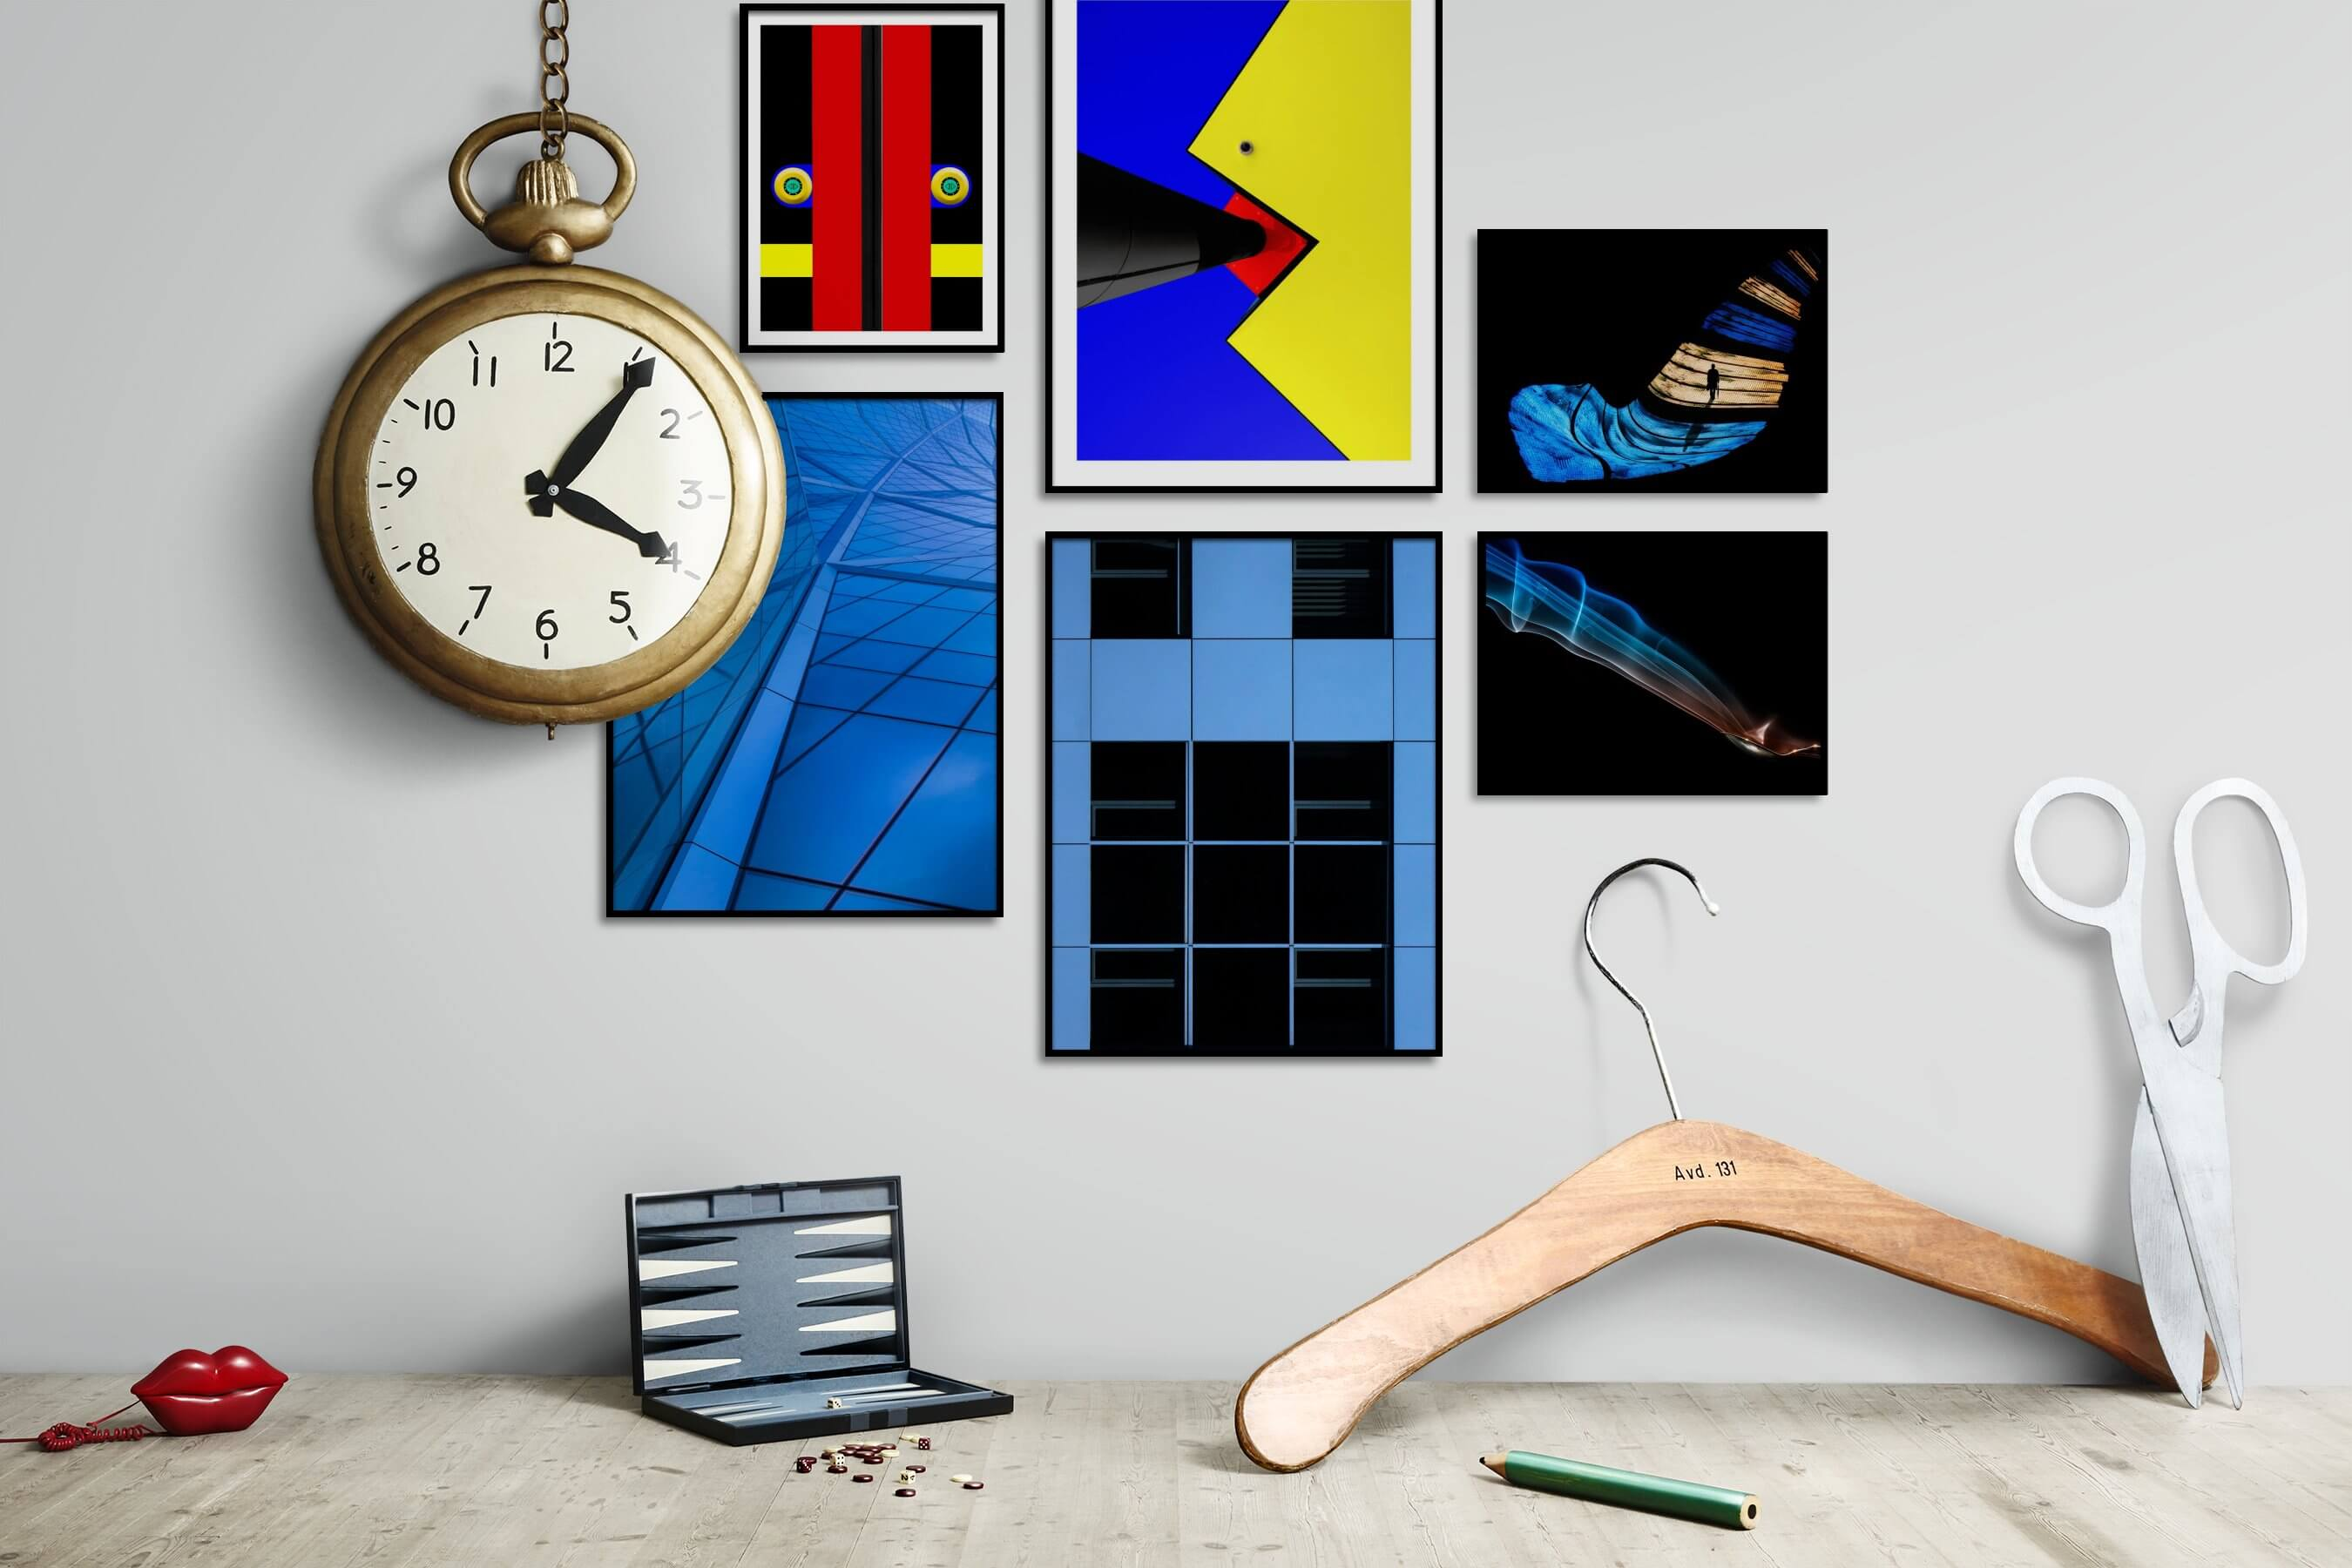 Gallery wall idea with six framed pictures arranged on a wall depicting Colorful, For the Moderate, Dark Tones, and For the Minimalist